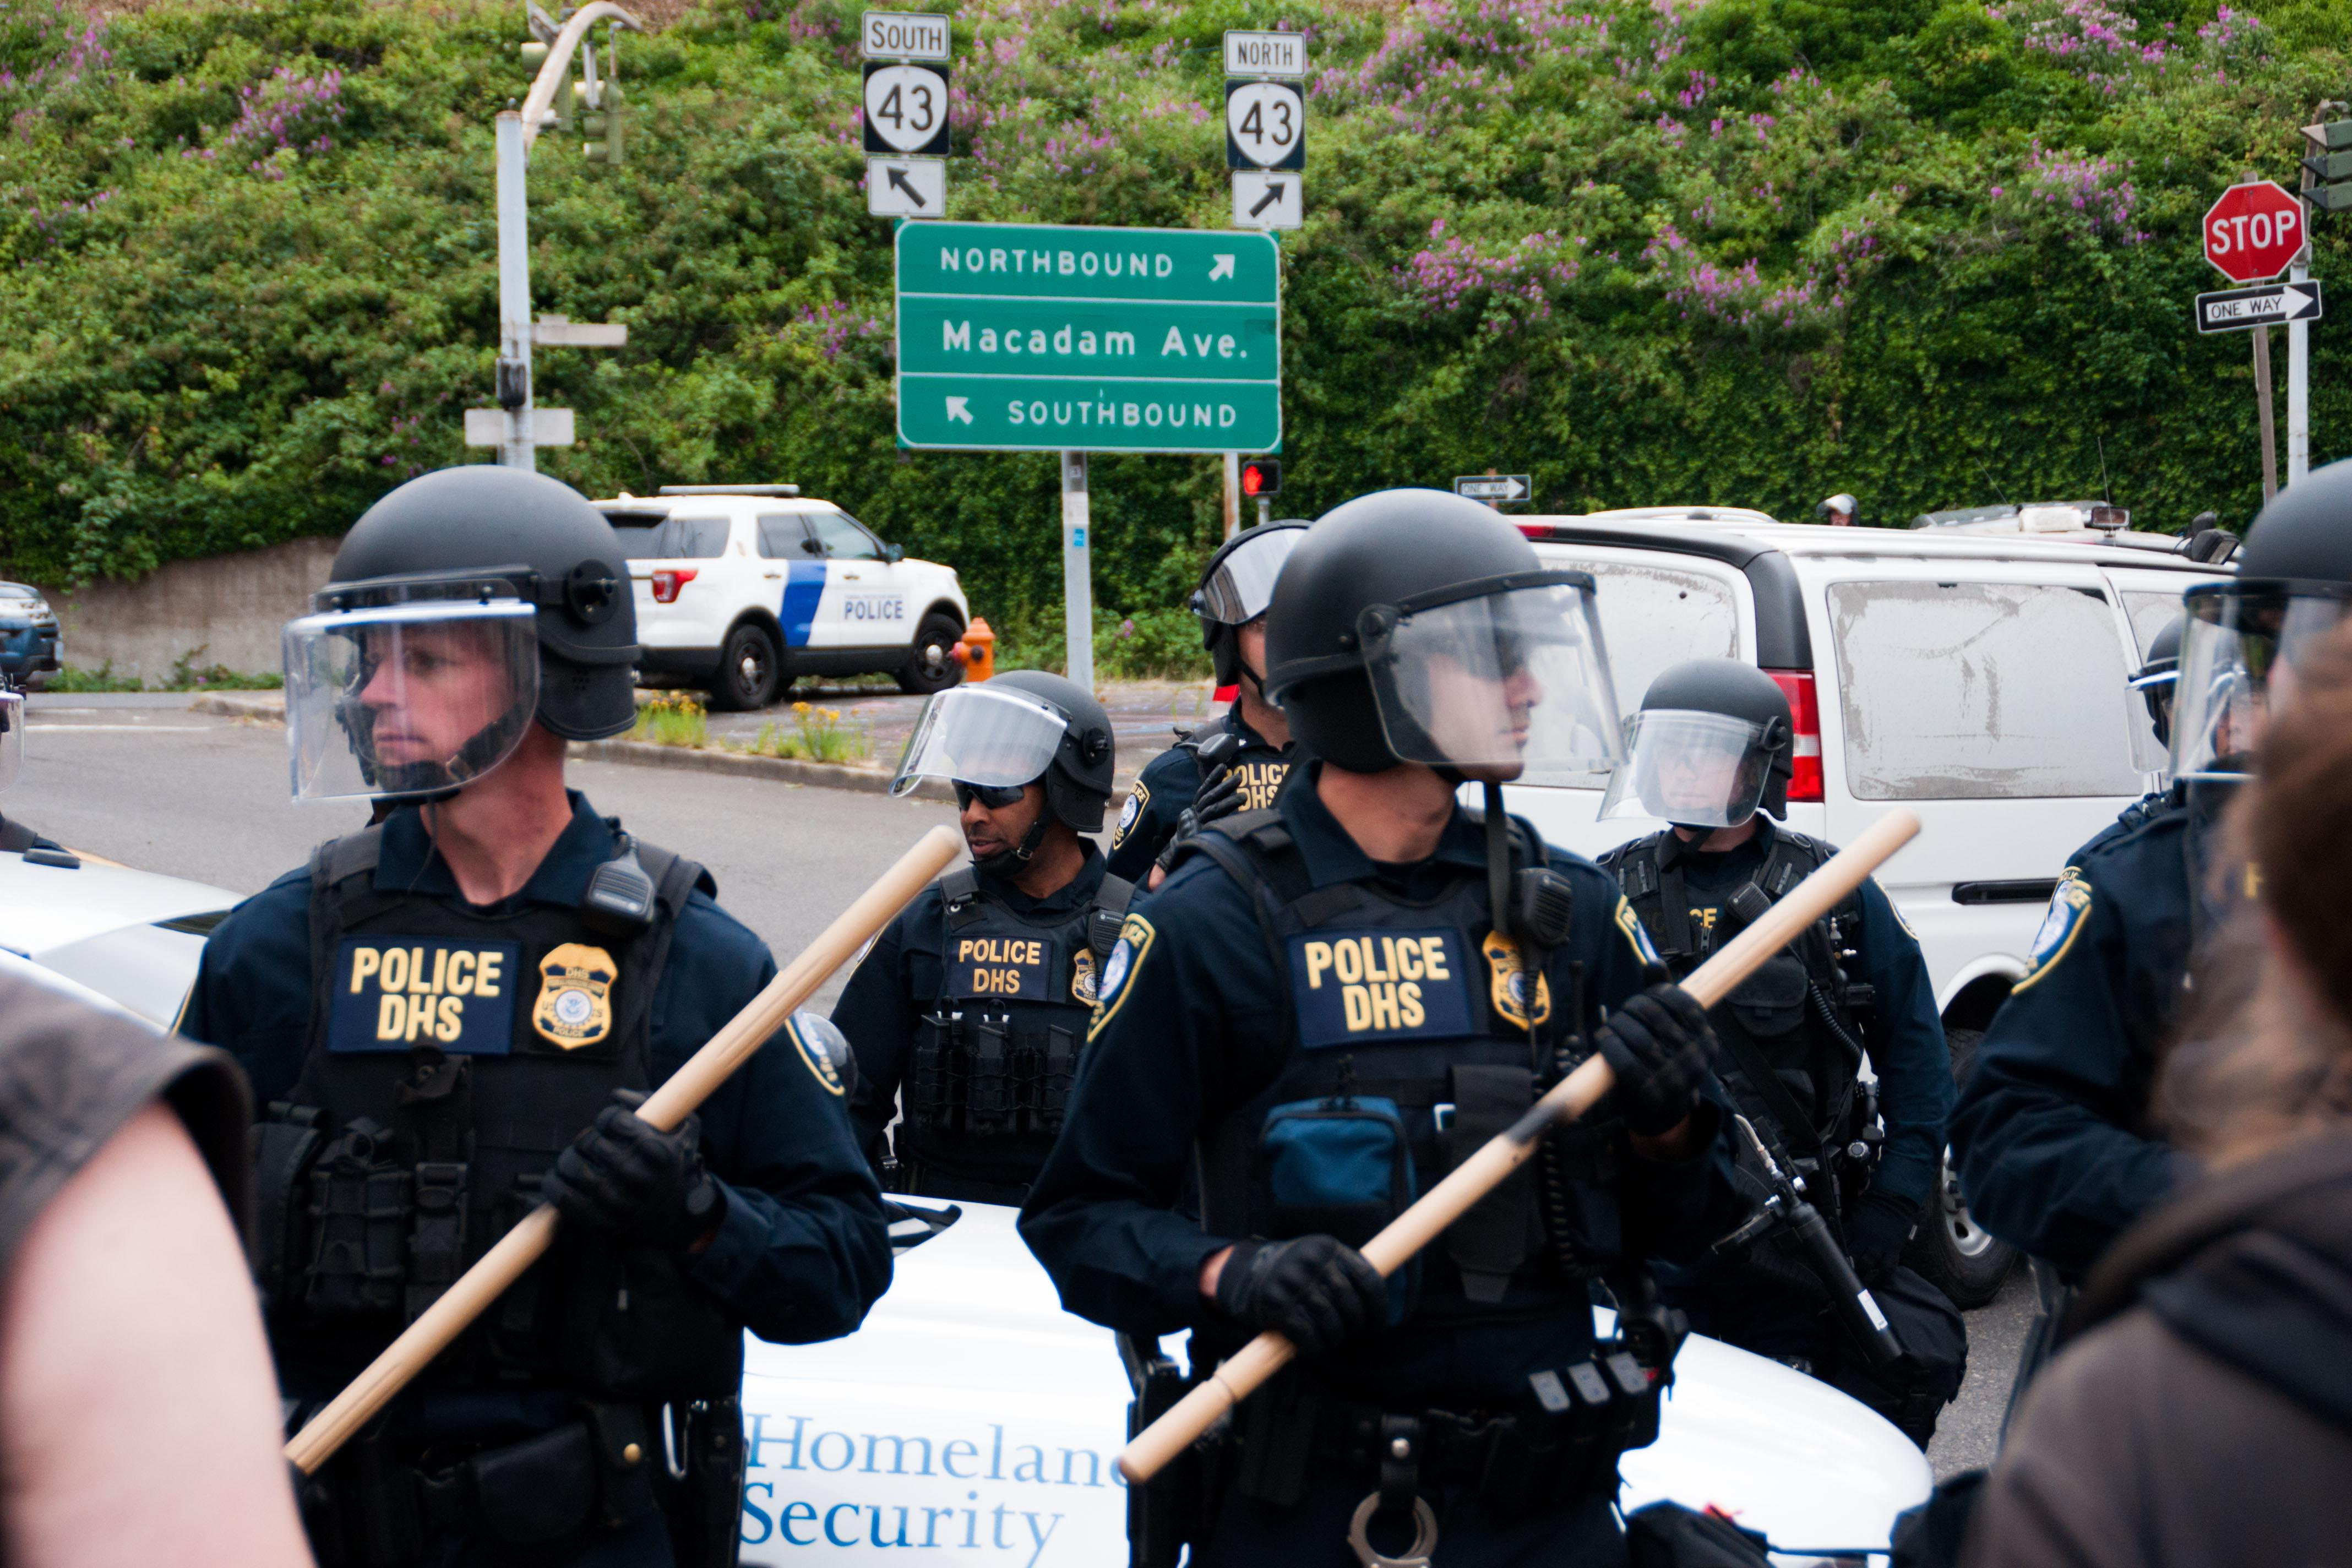 Federal law enforcement officers hold a police line at the Portland ICE building on SW Macadam Avenue Thursday, June 28, 2018, after officials worked to clear the entrance to the building.